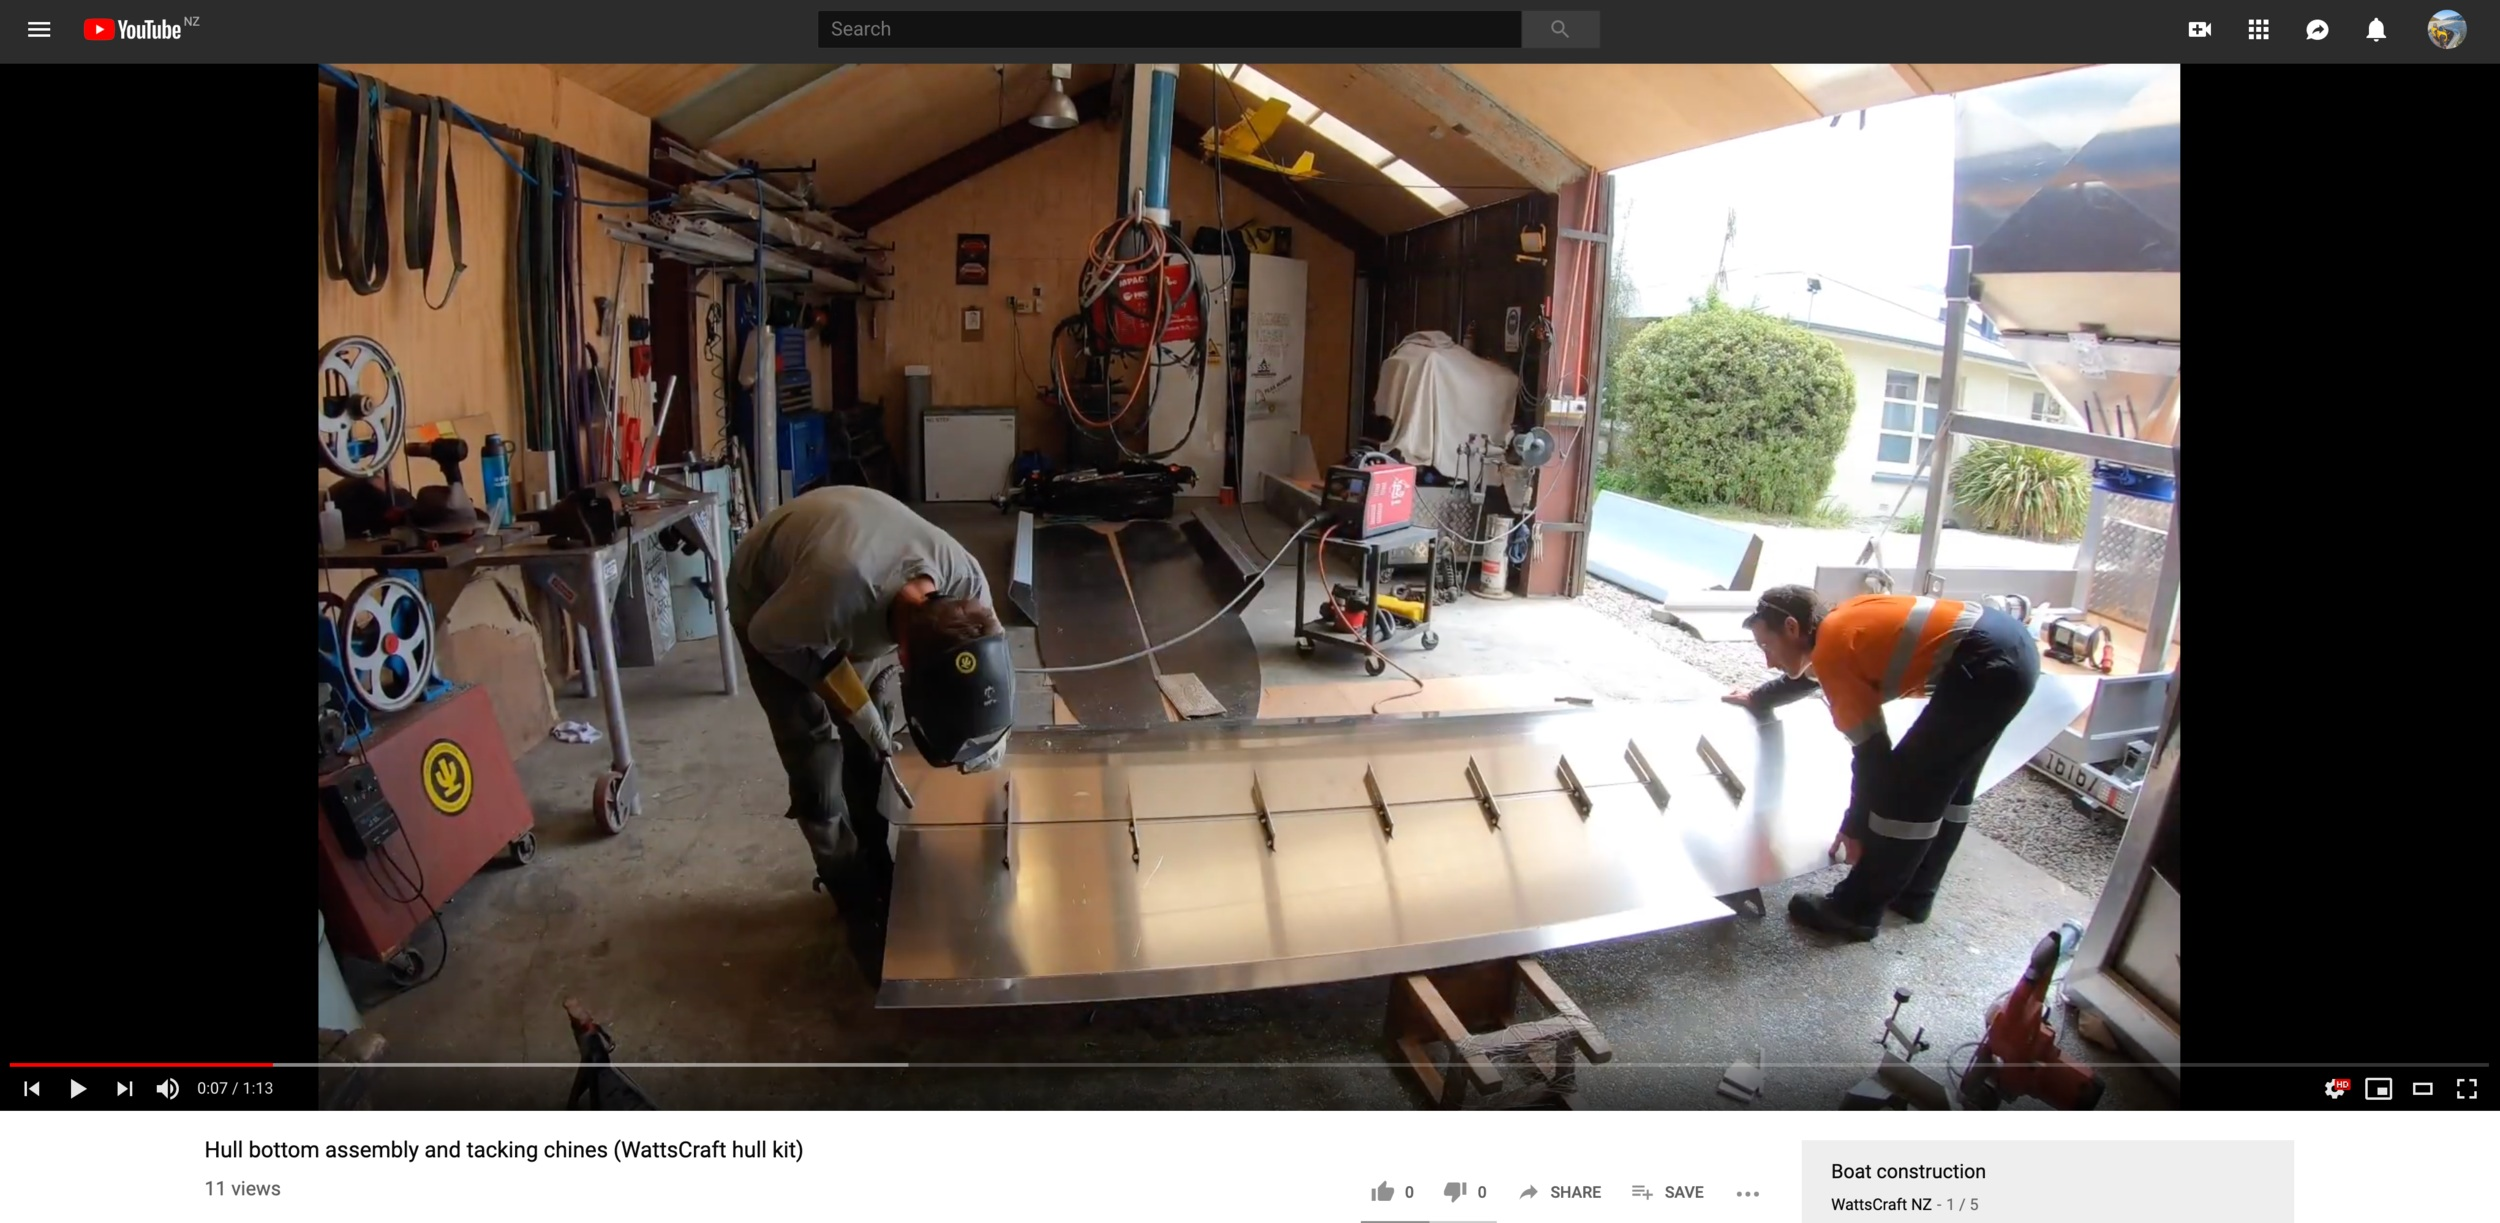 Check out example videos of key steps of building a hull here